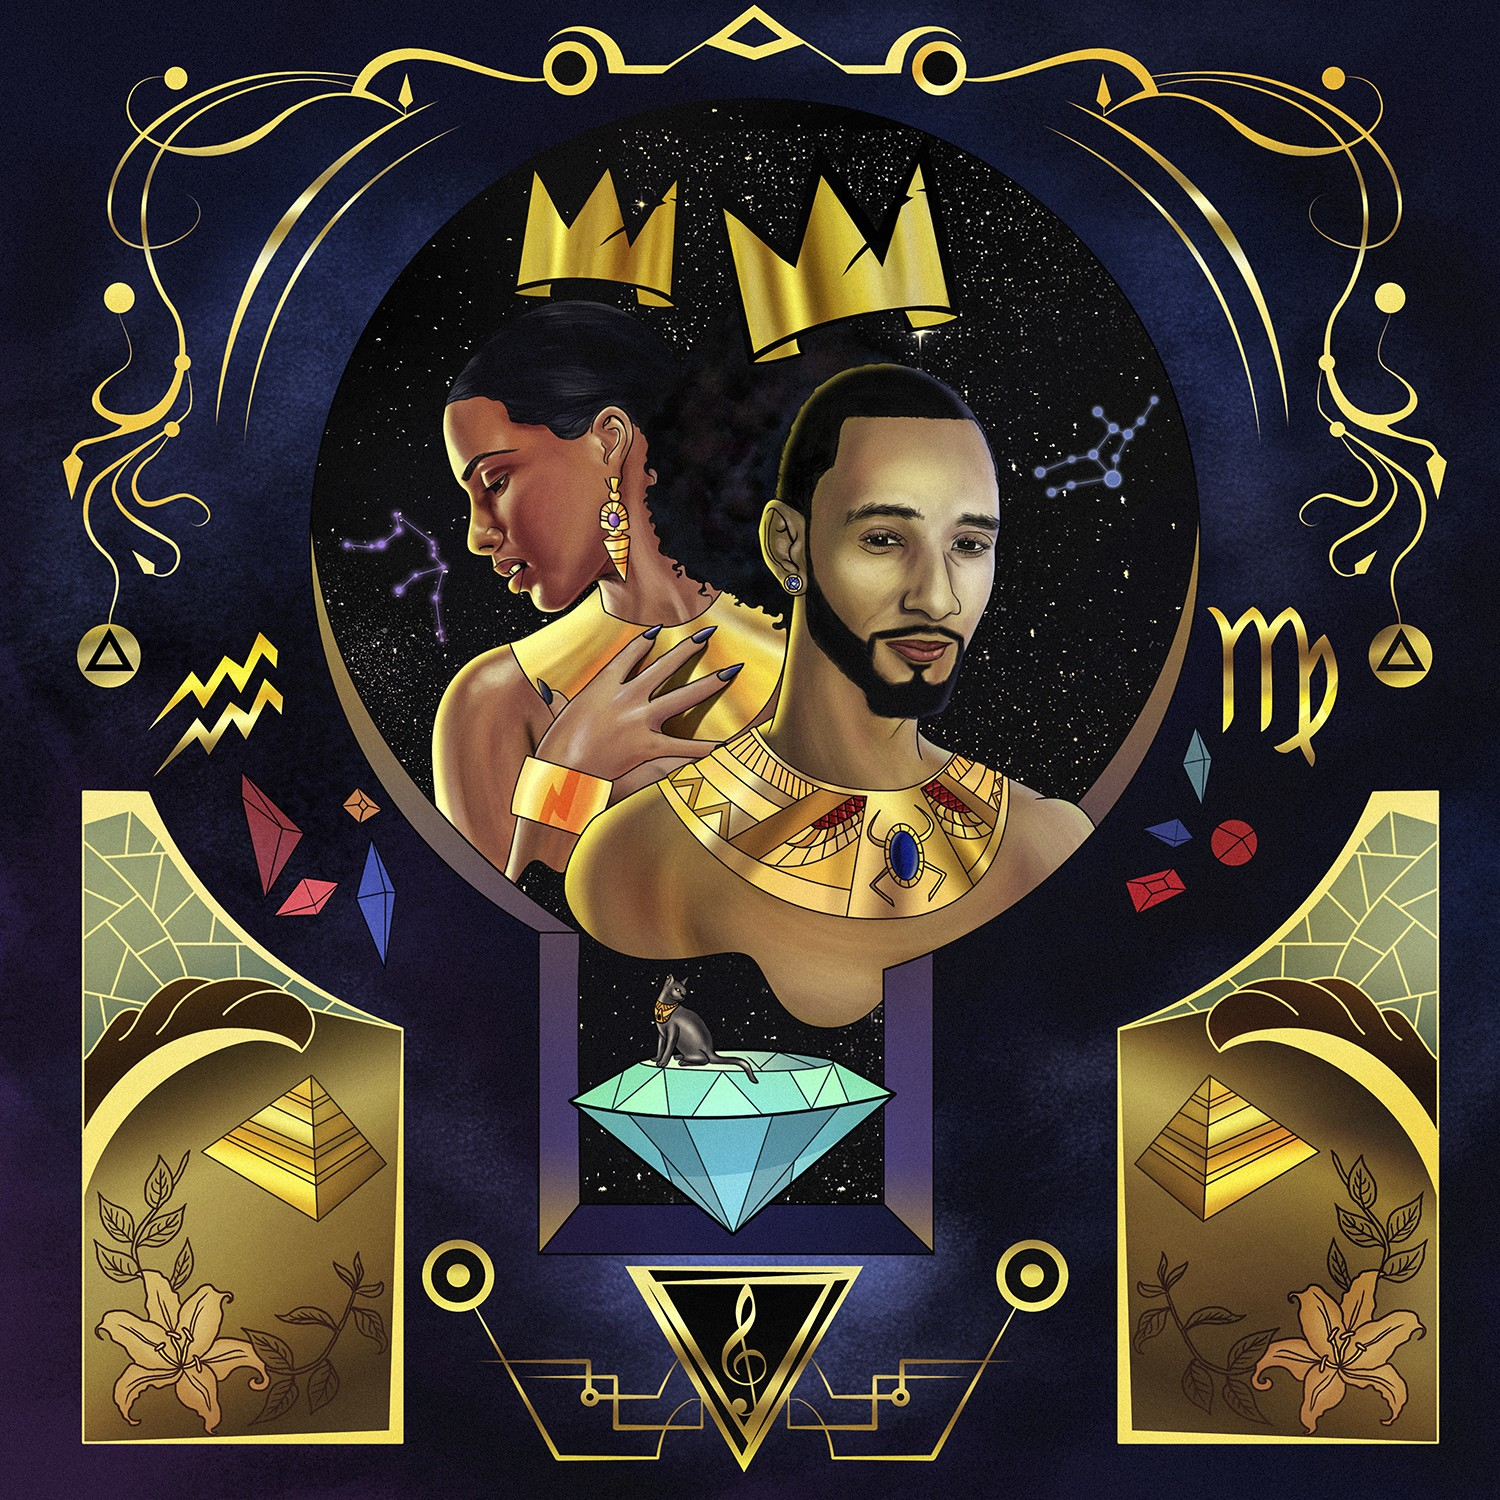 king-swizz-and-queen-alicia-illustration-basic-magazine